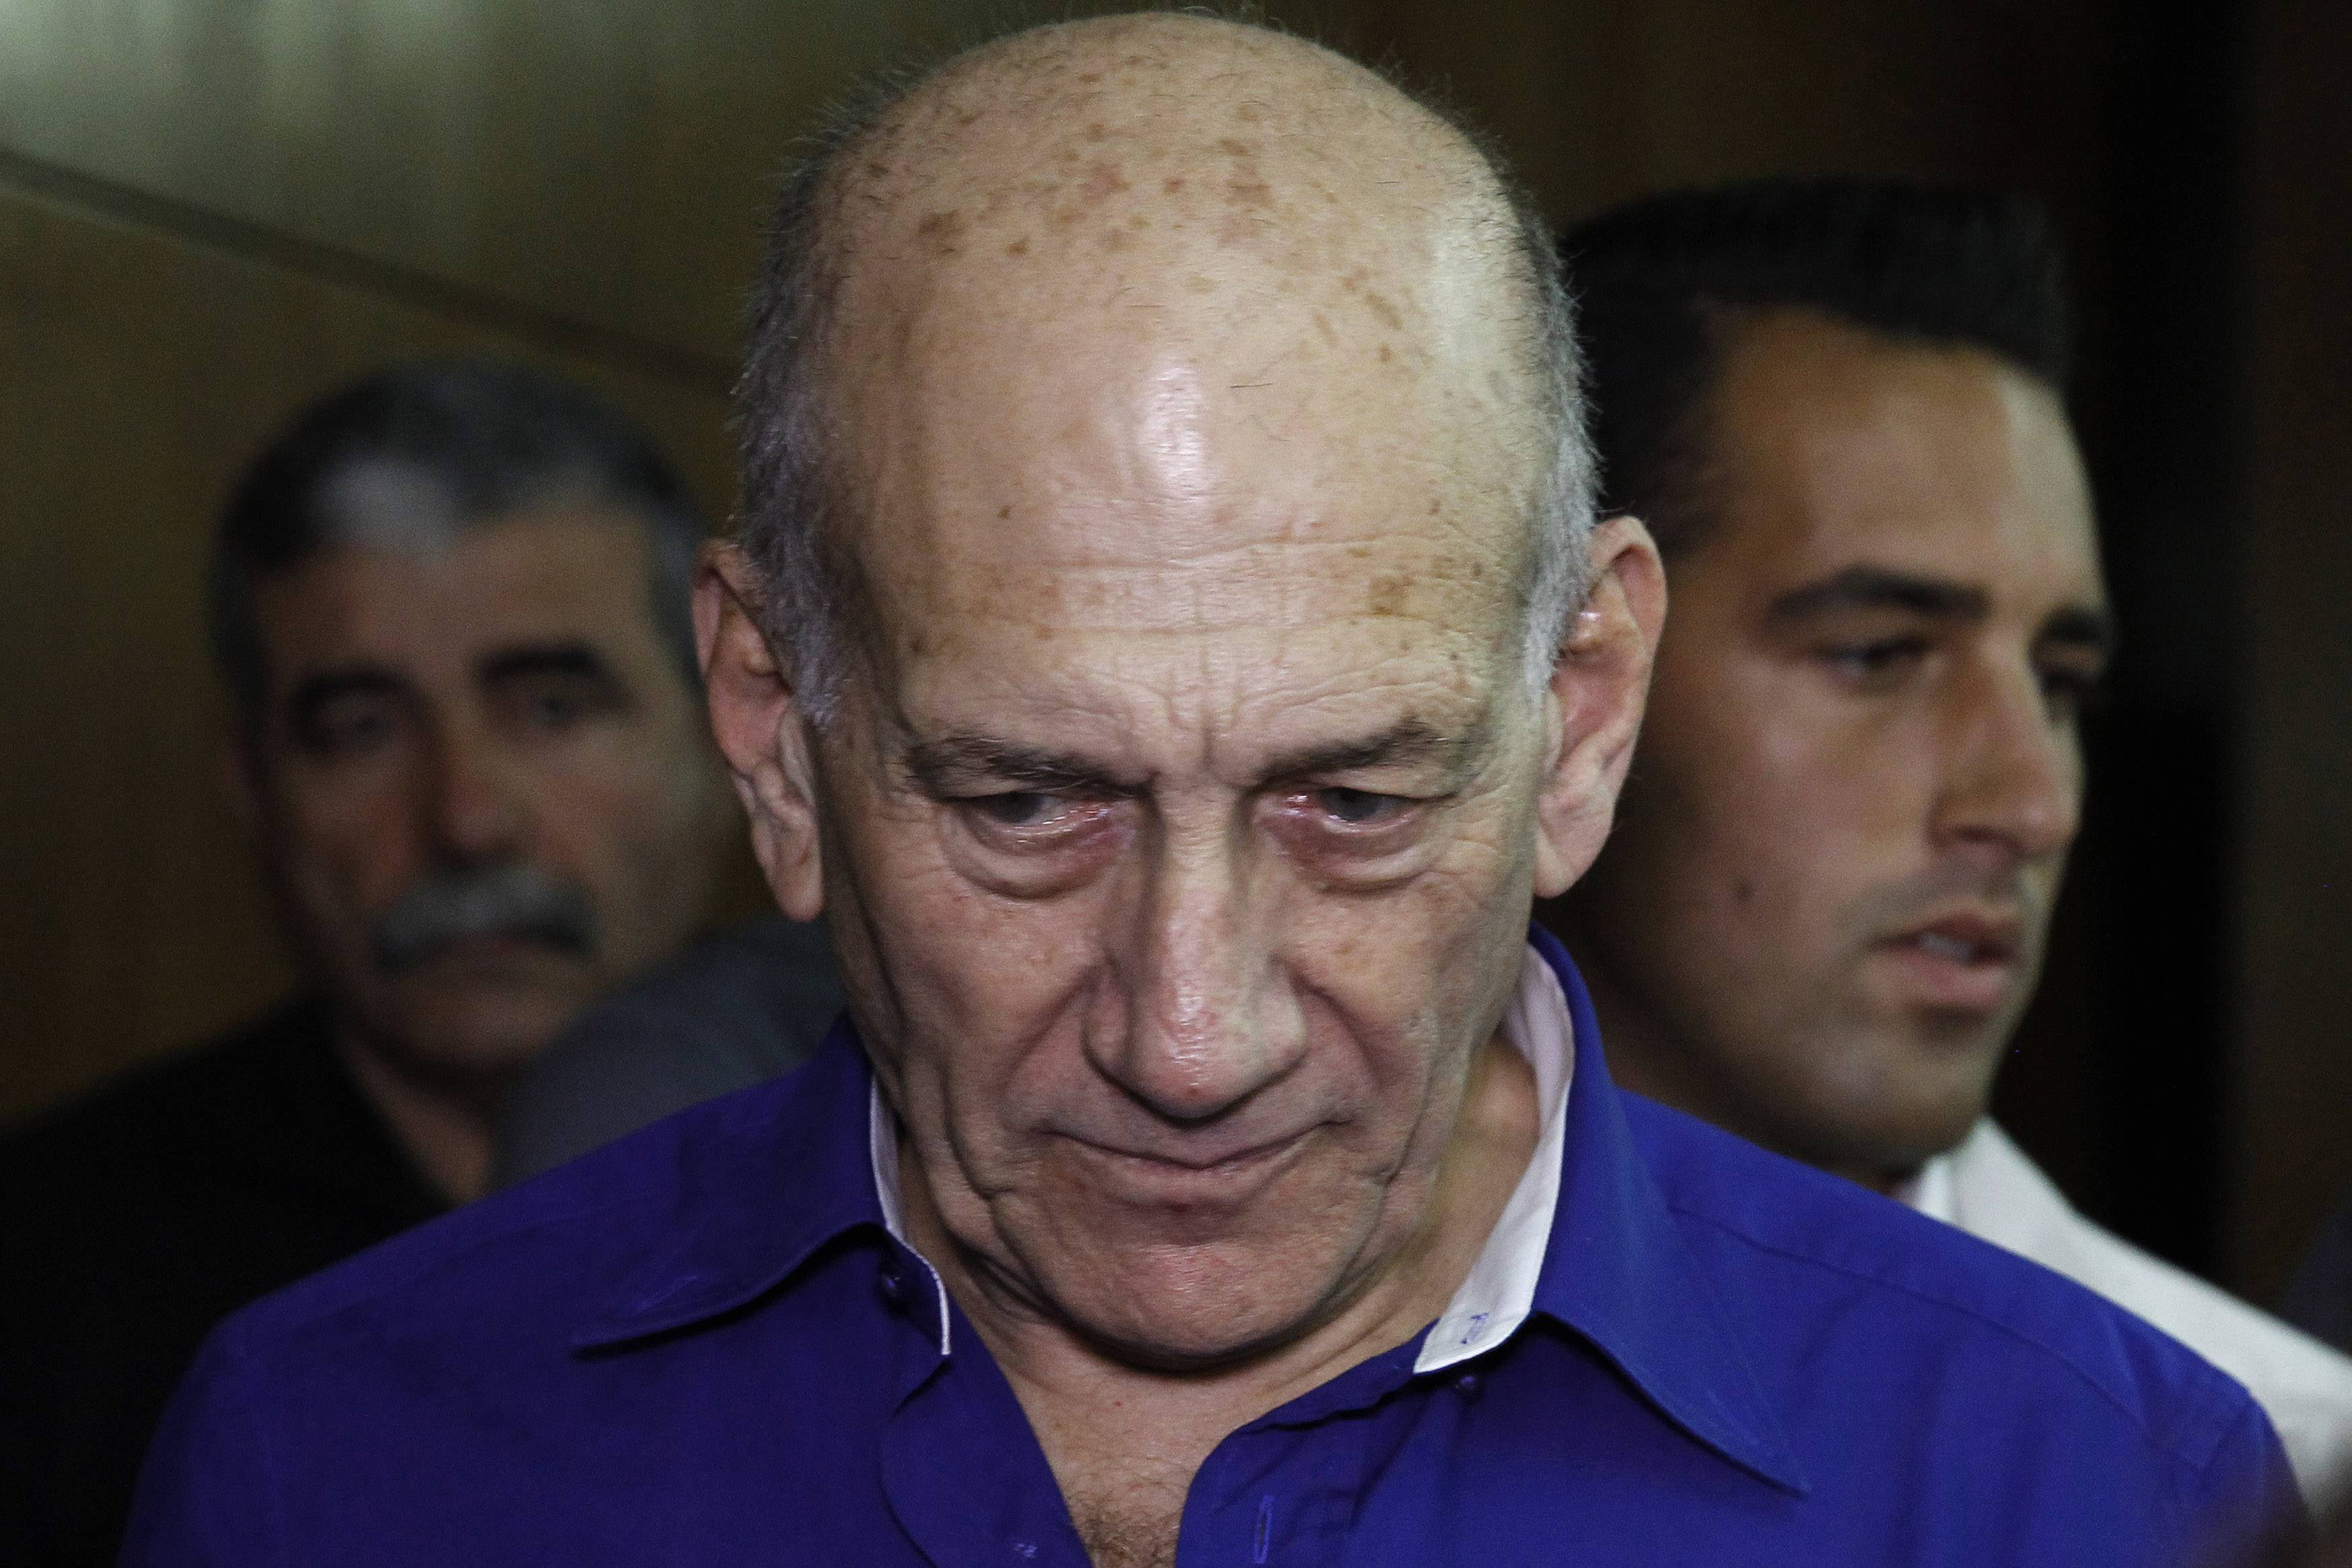 Israel's former Prime Minister Ehud Olmert was sentenced on Tuesday to six years in prison for his role in wide-ranging bribery case, capping a stunning fall from grace for one of the most powerful men in the country.